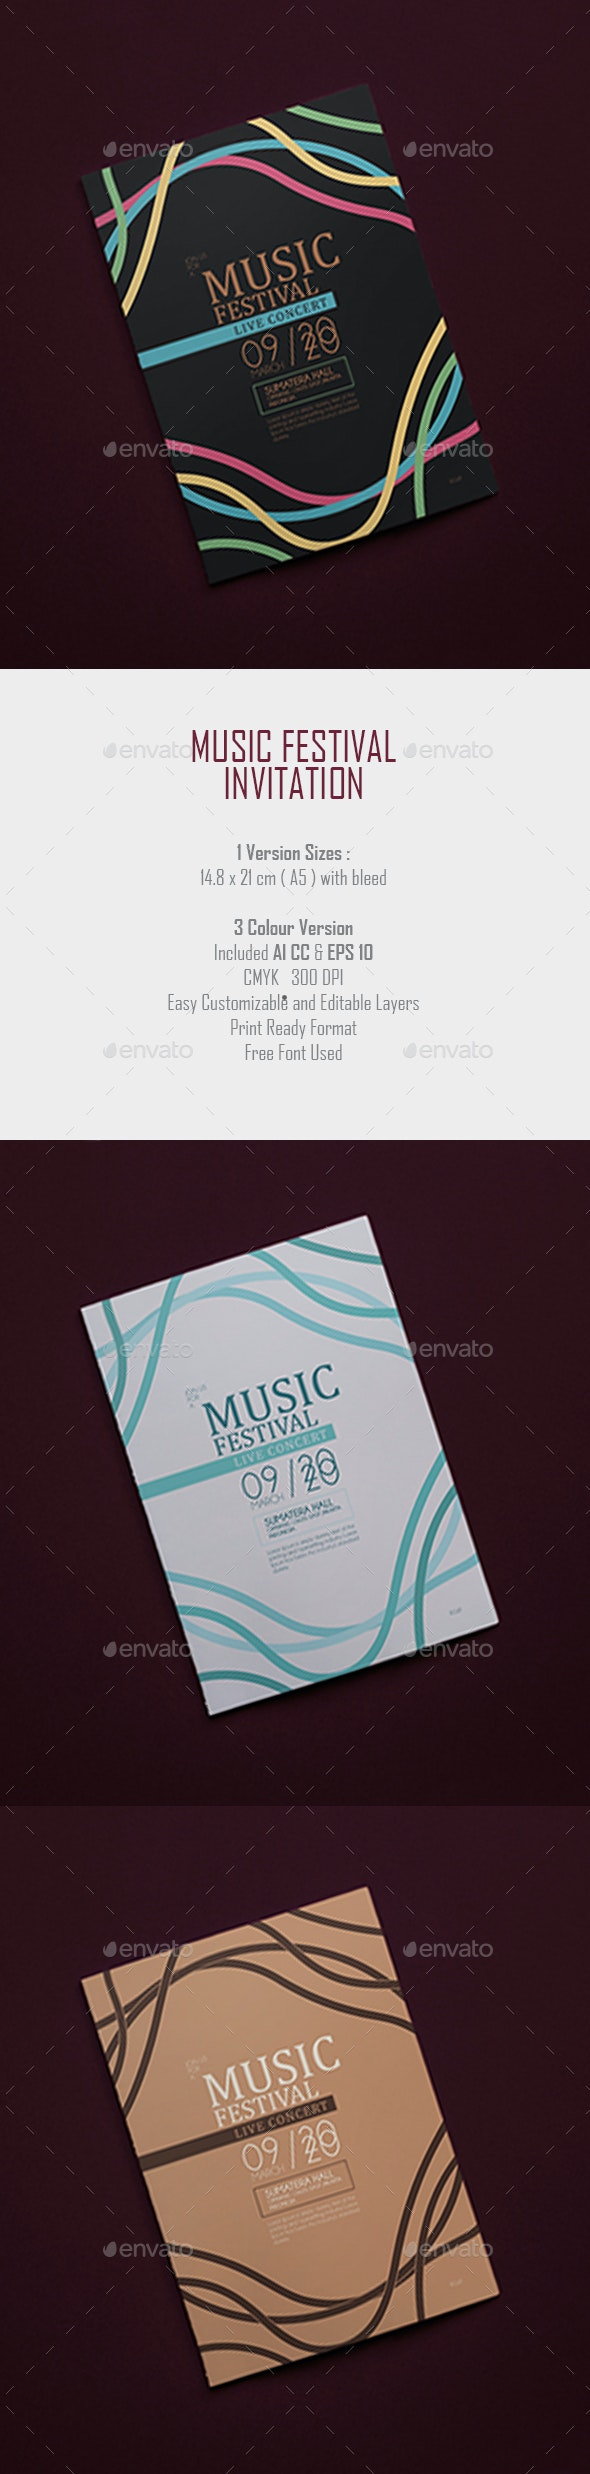 Music Festival Invitation - Events Flyers